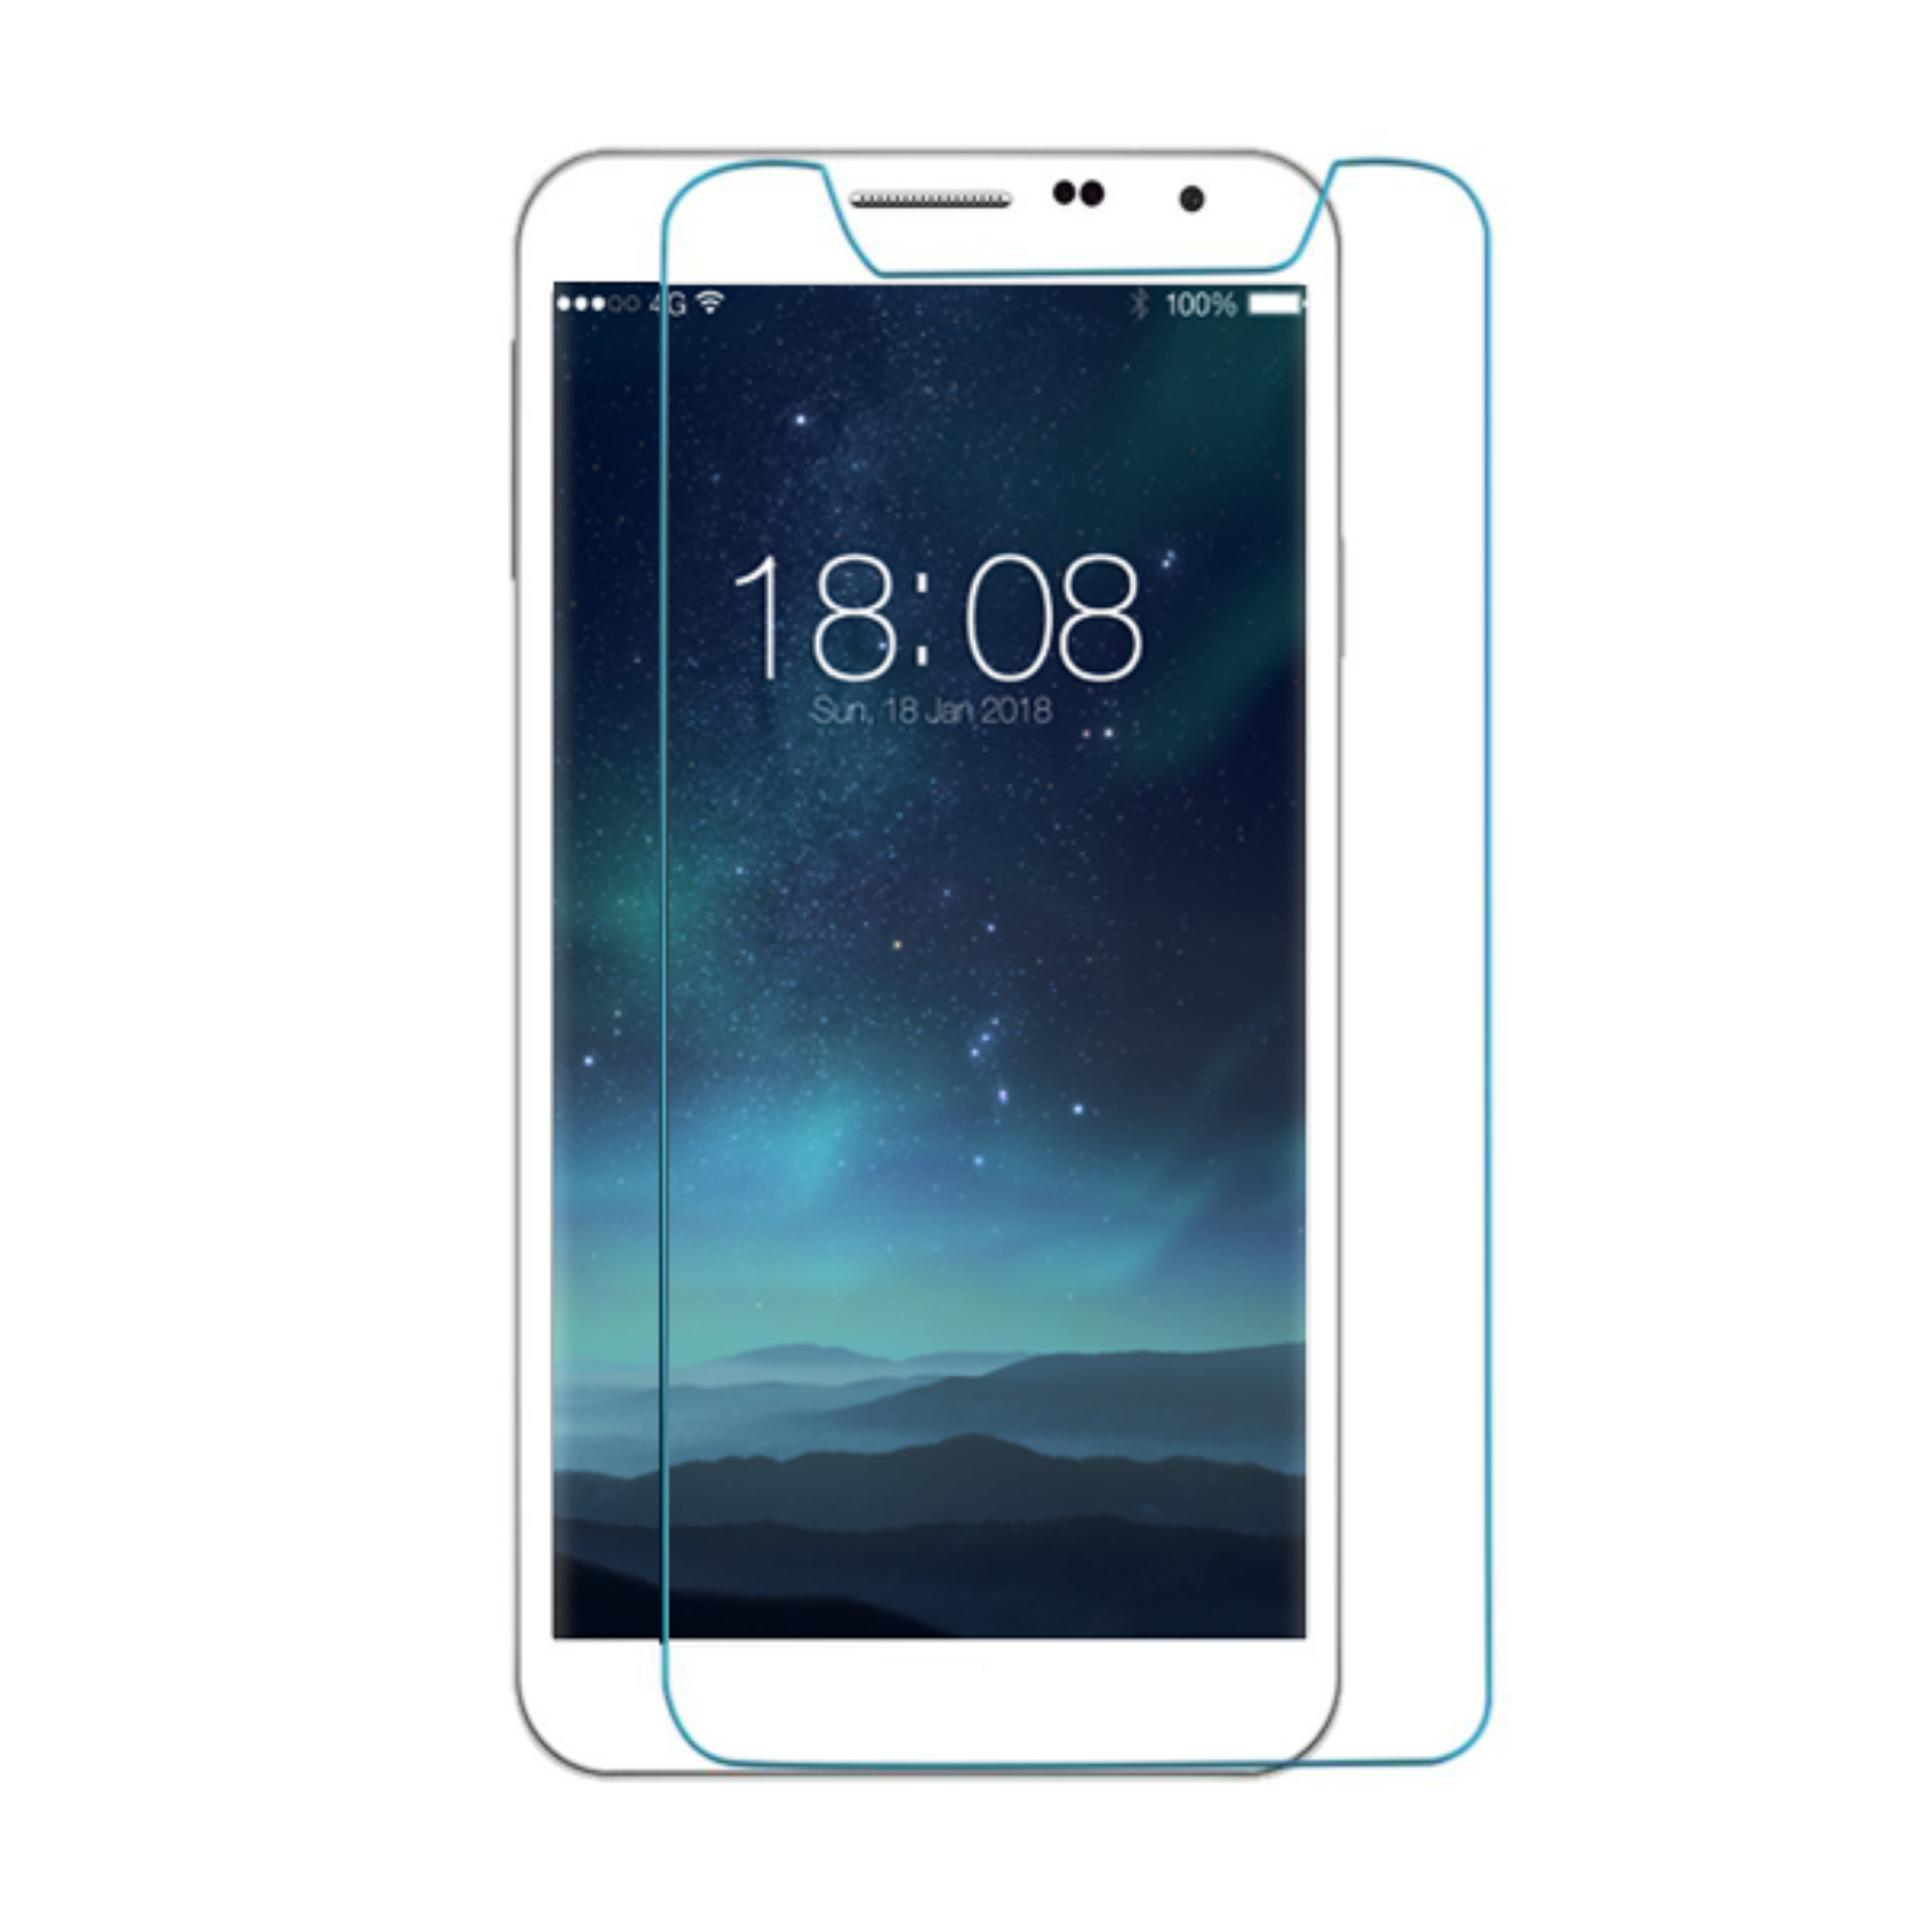 Case Dyval Flipcover Advan vandroid S5E NXT Ungu + free tempered glass -